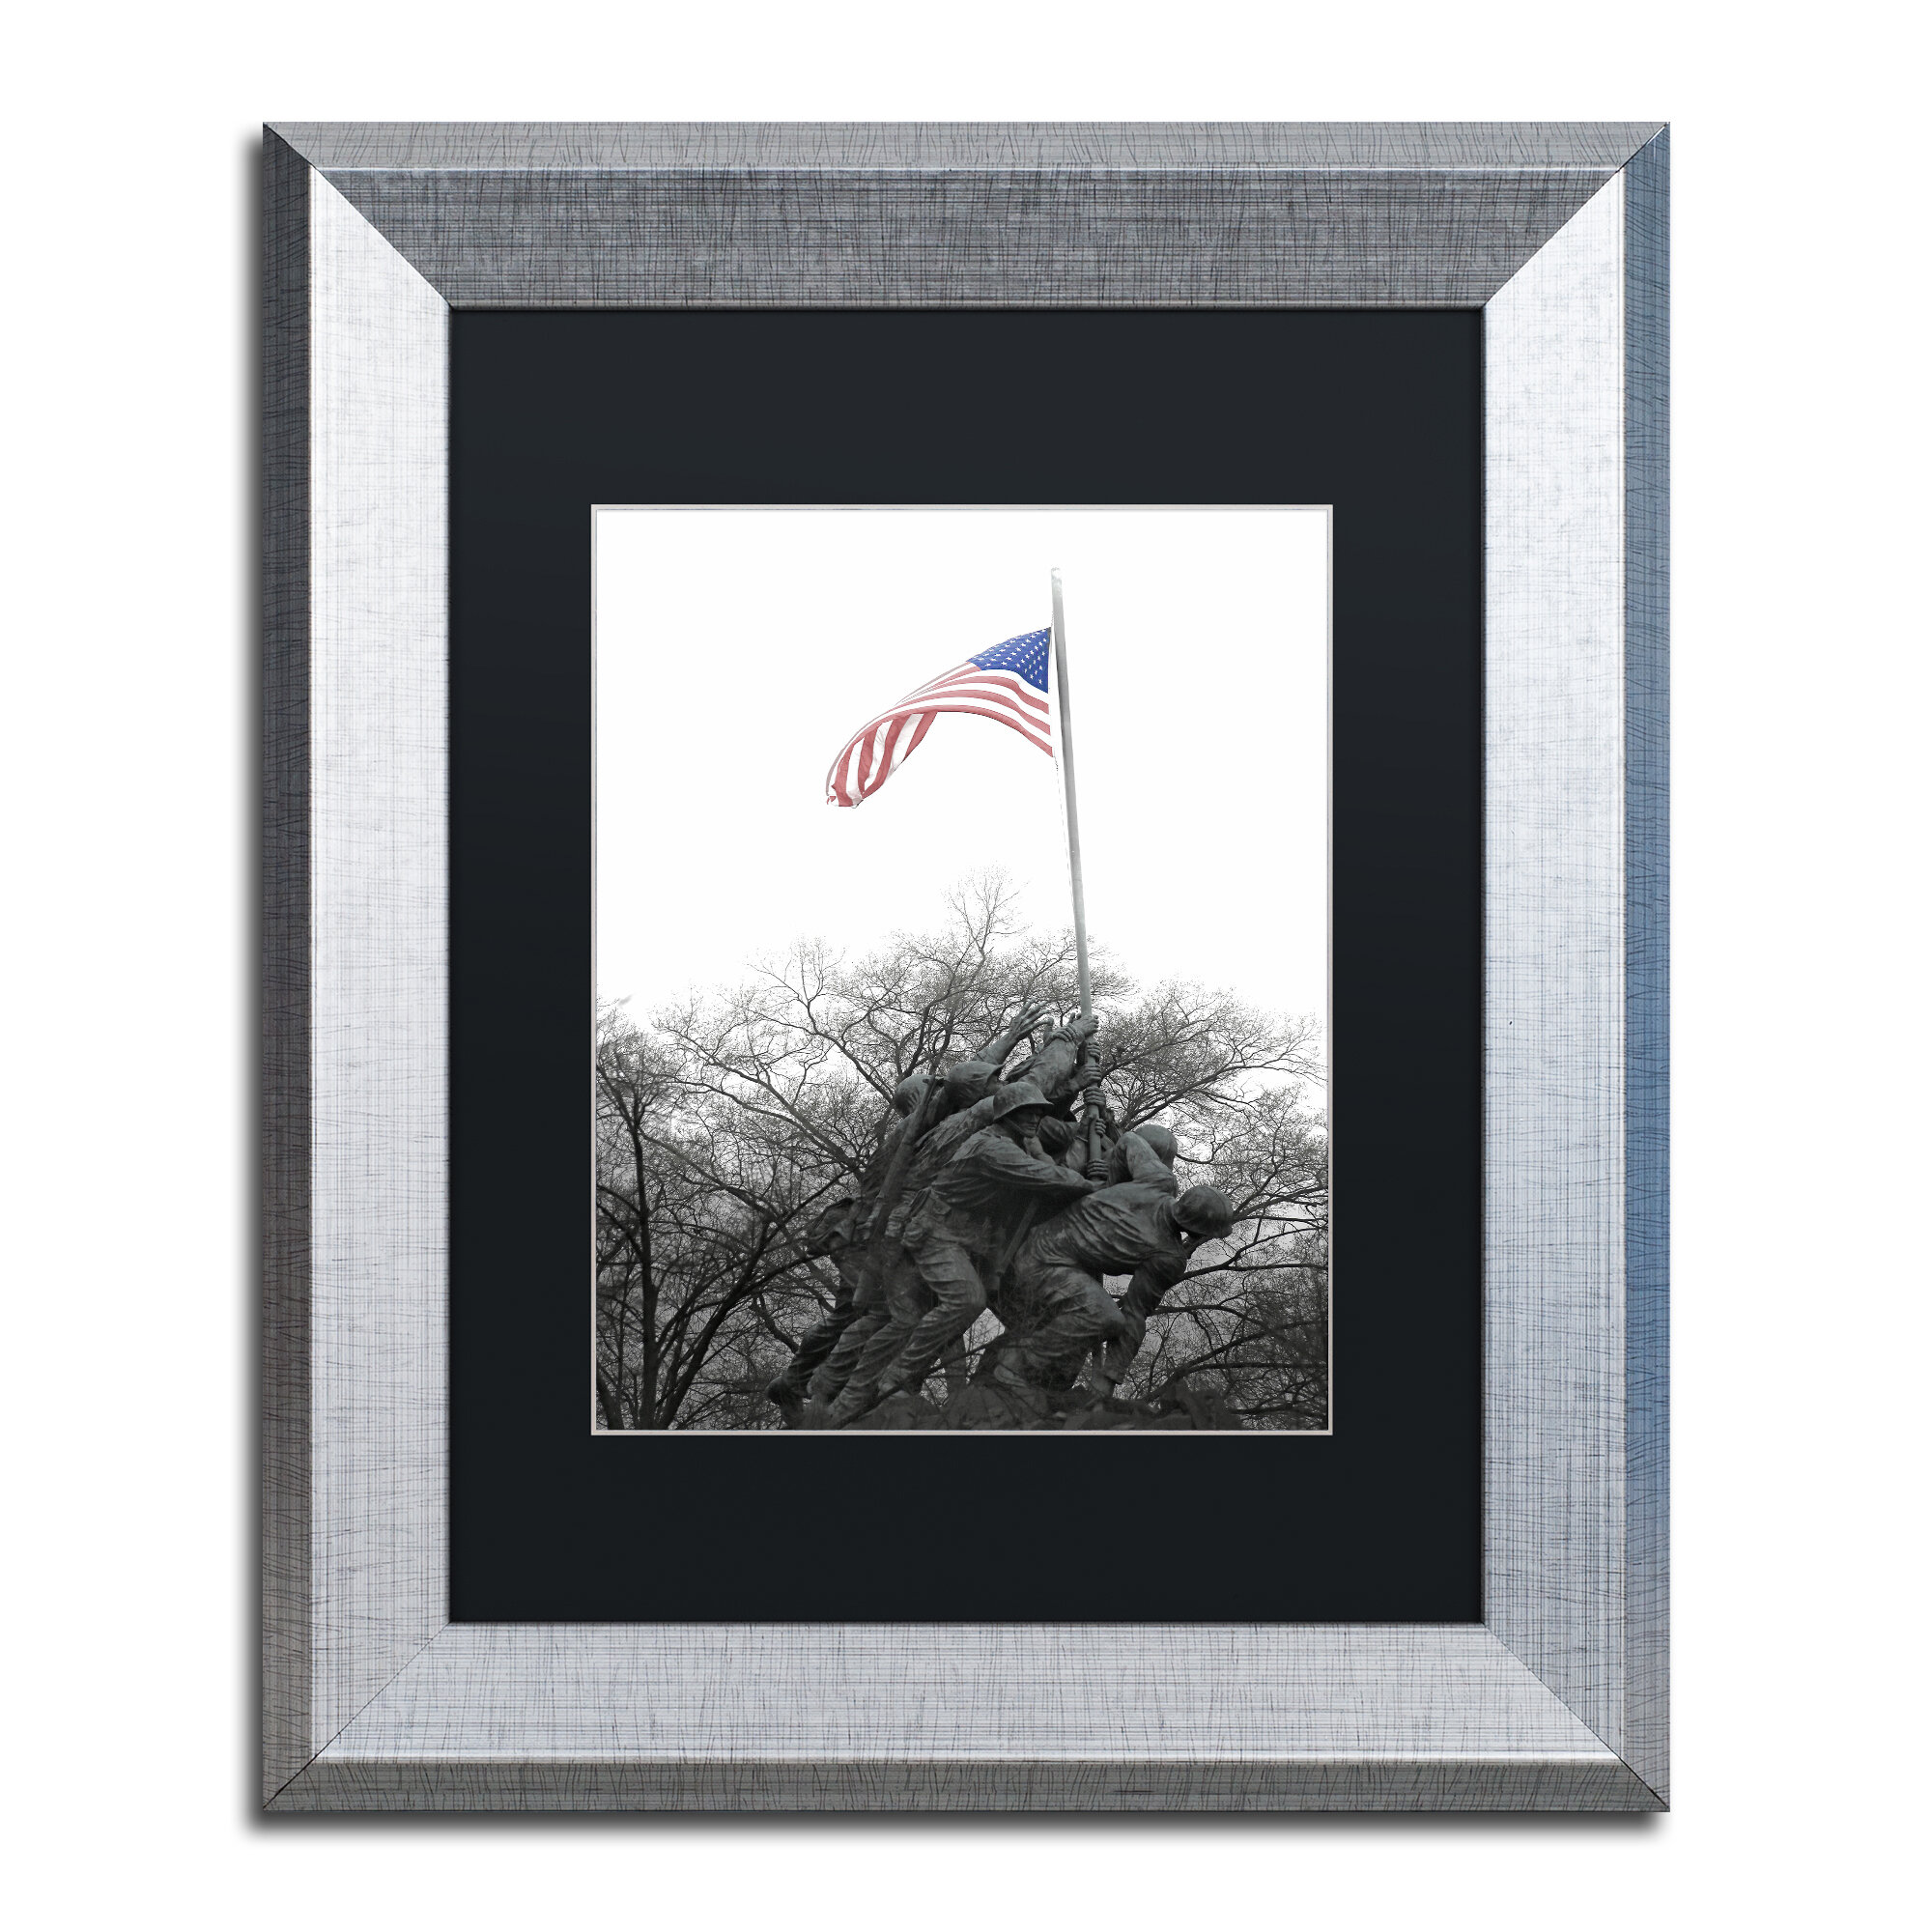 Trademark Art Courage By Cateyes Framed Photographic Print Wayfair